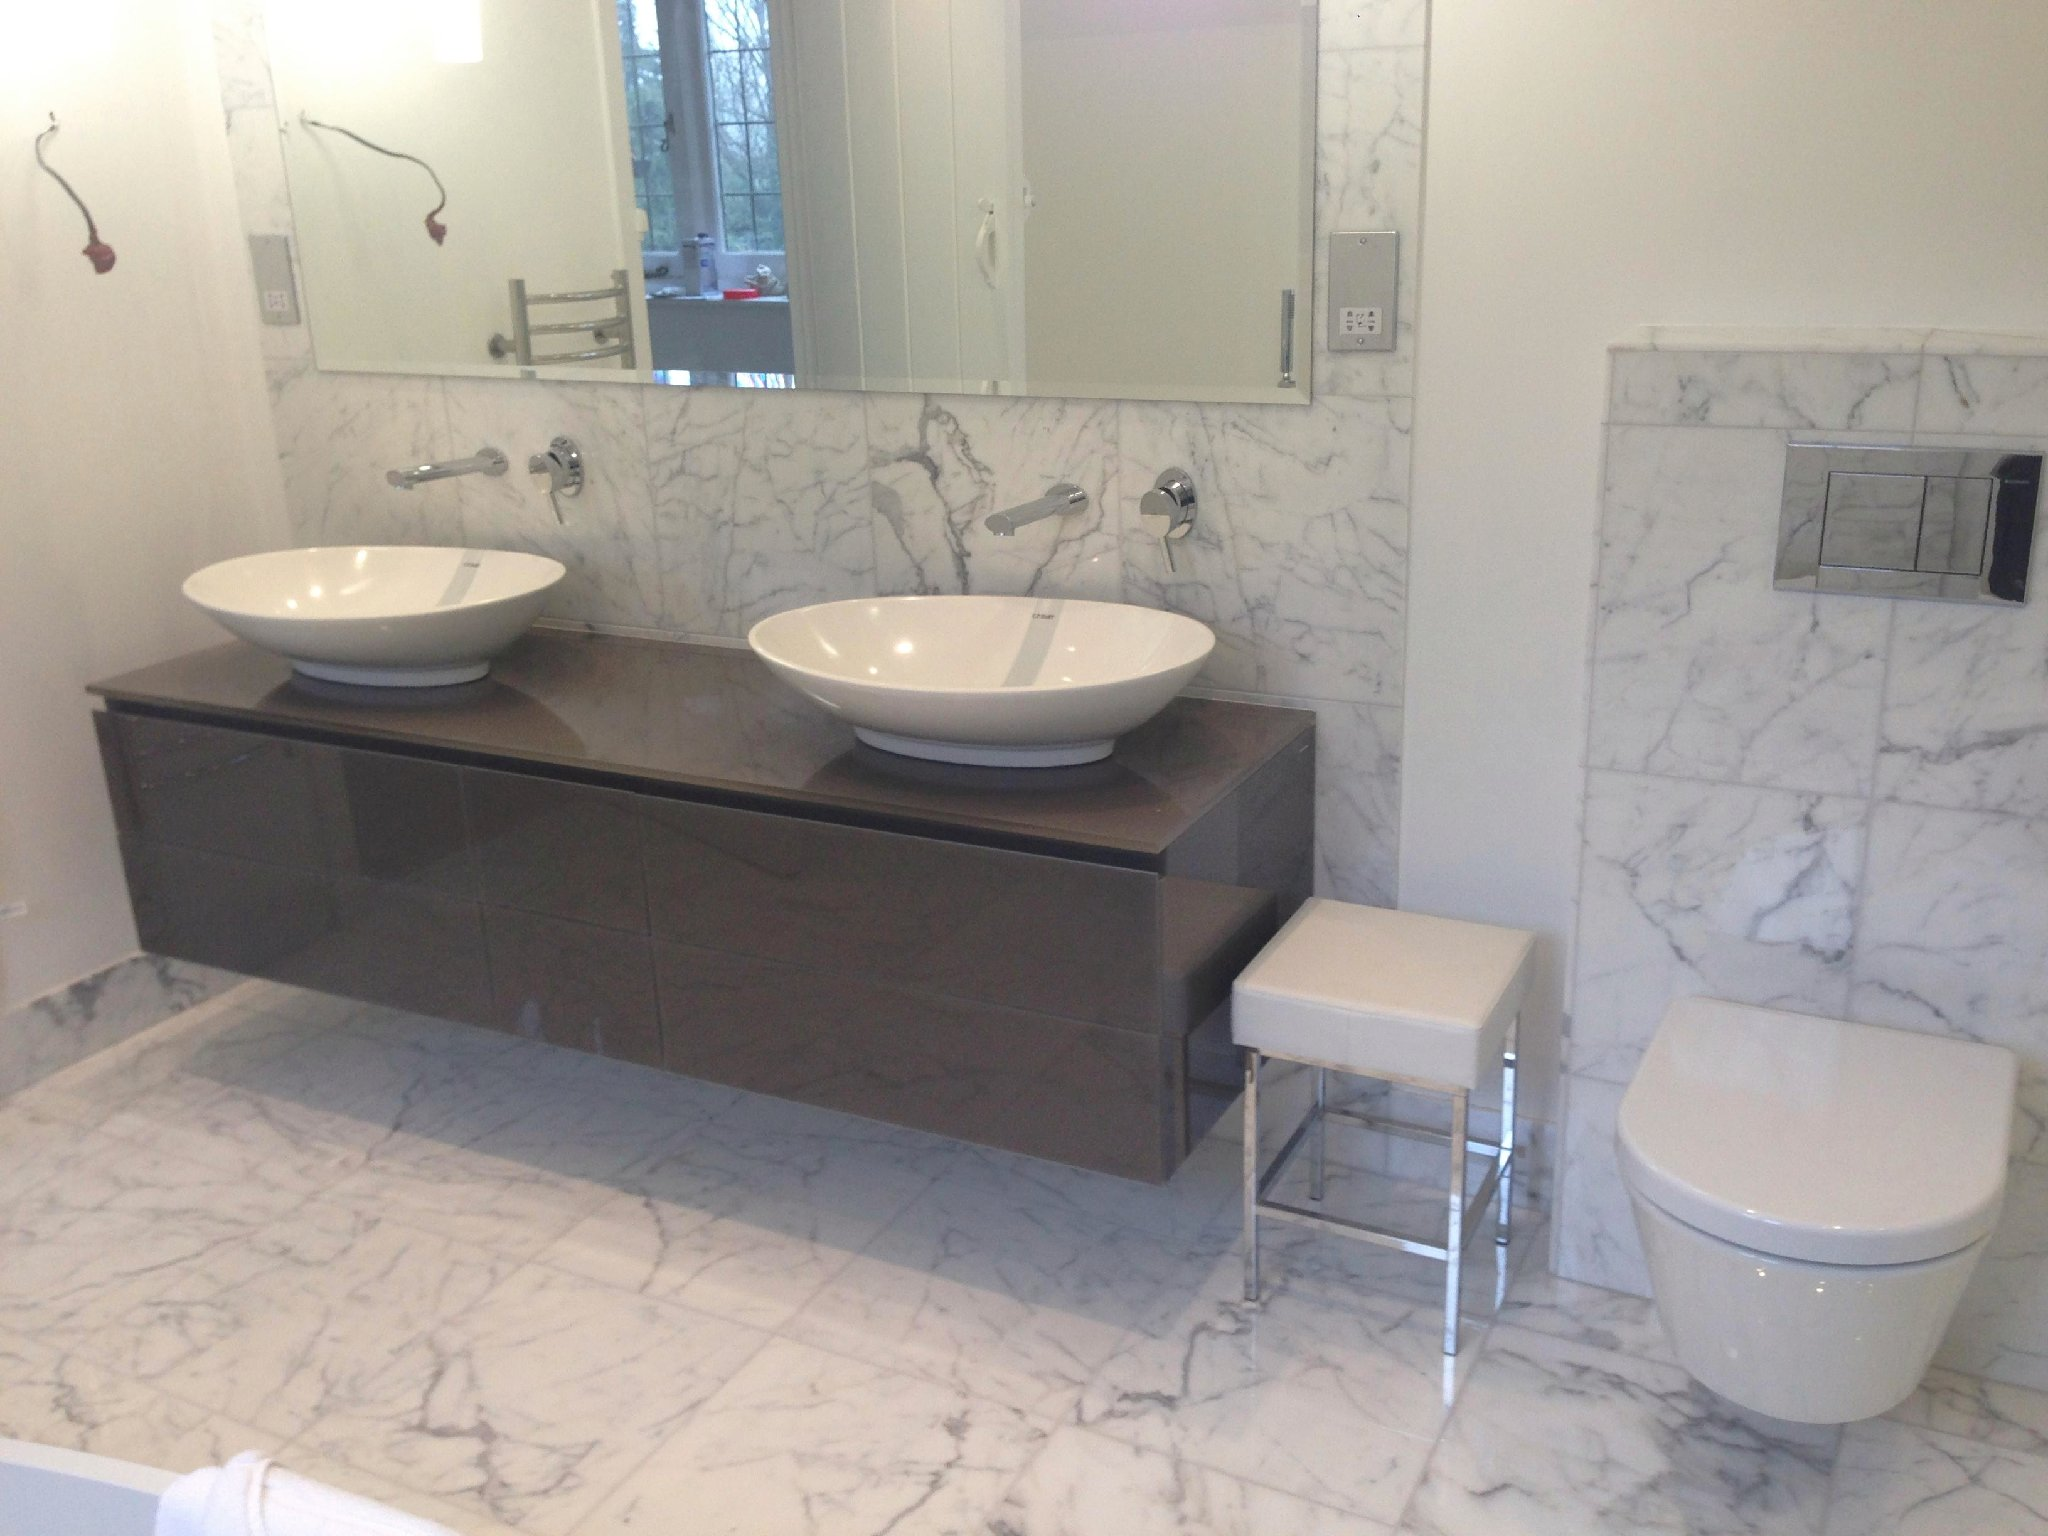 Clearwater Bathrooms Bathroom Planners And Furnishers In St Albans Al1 1jb